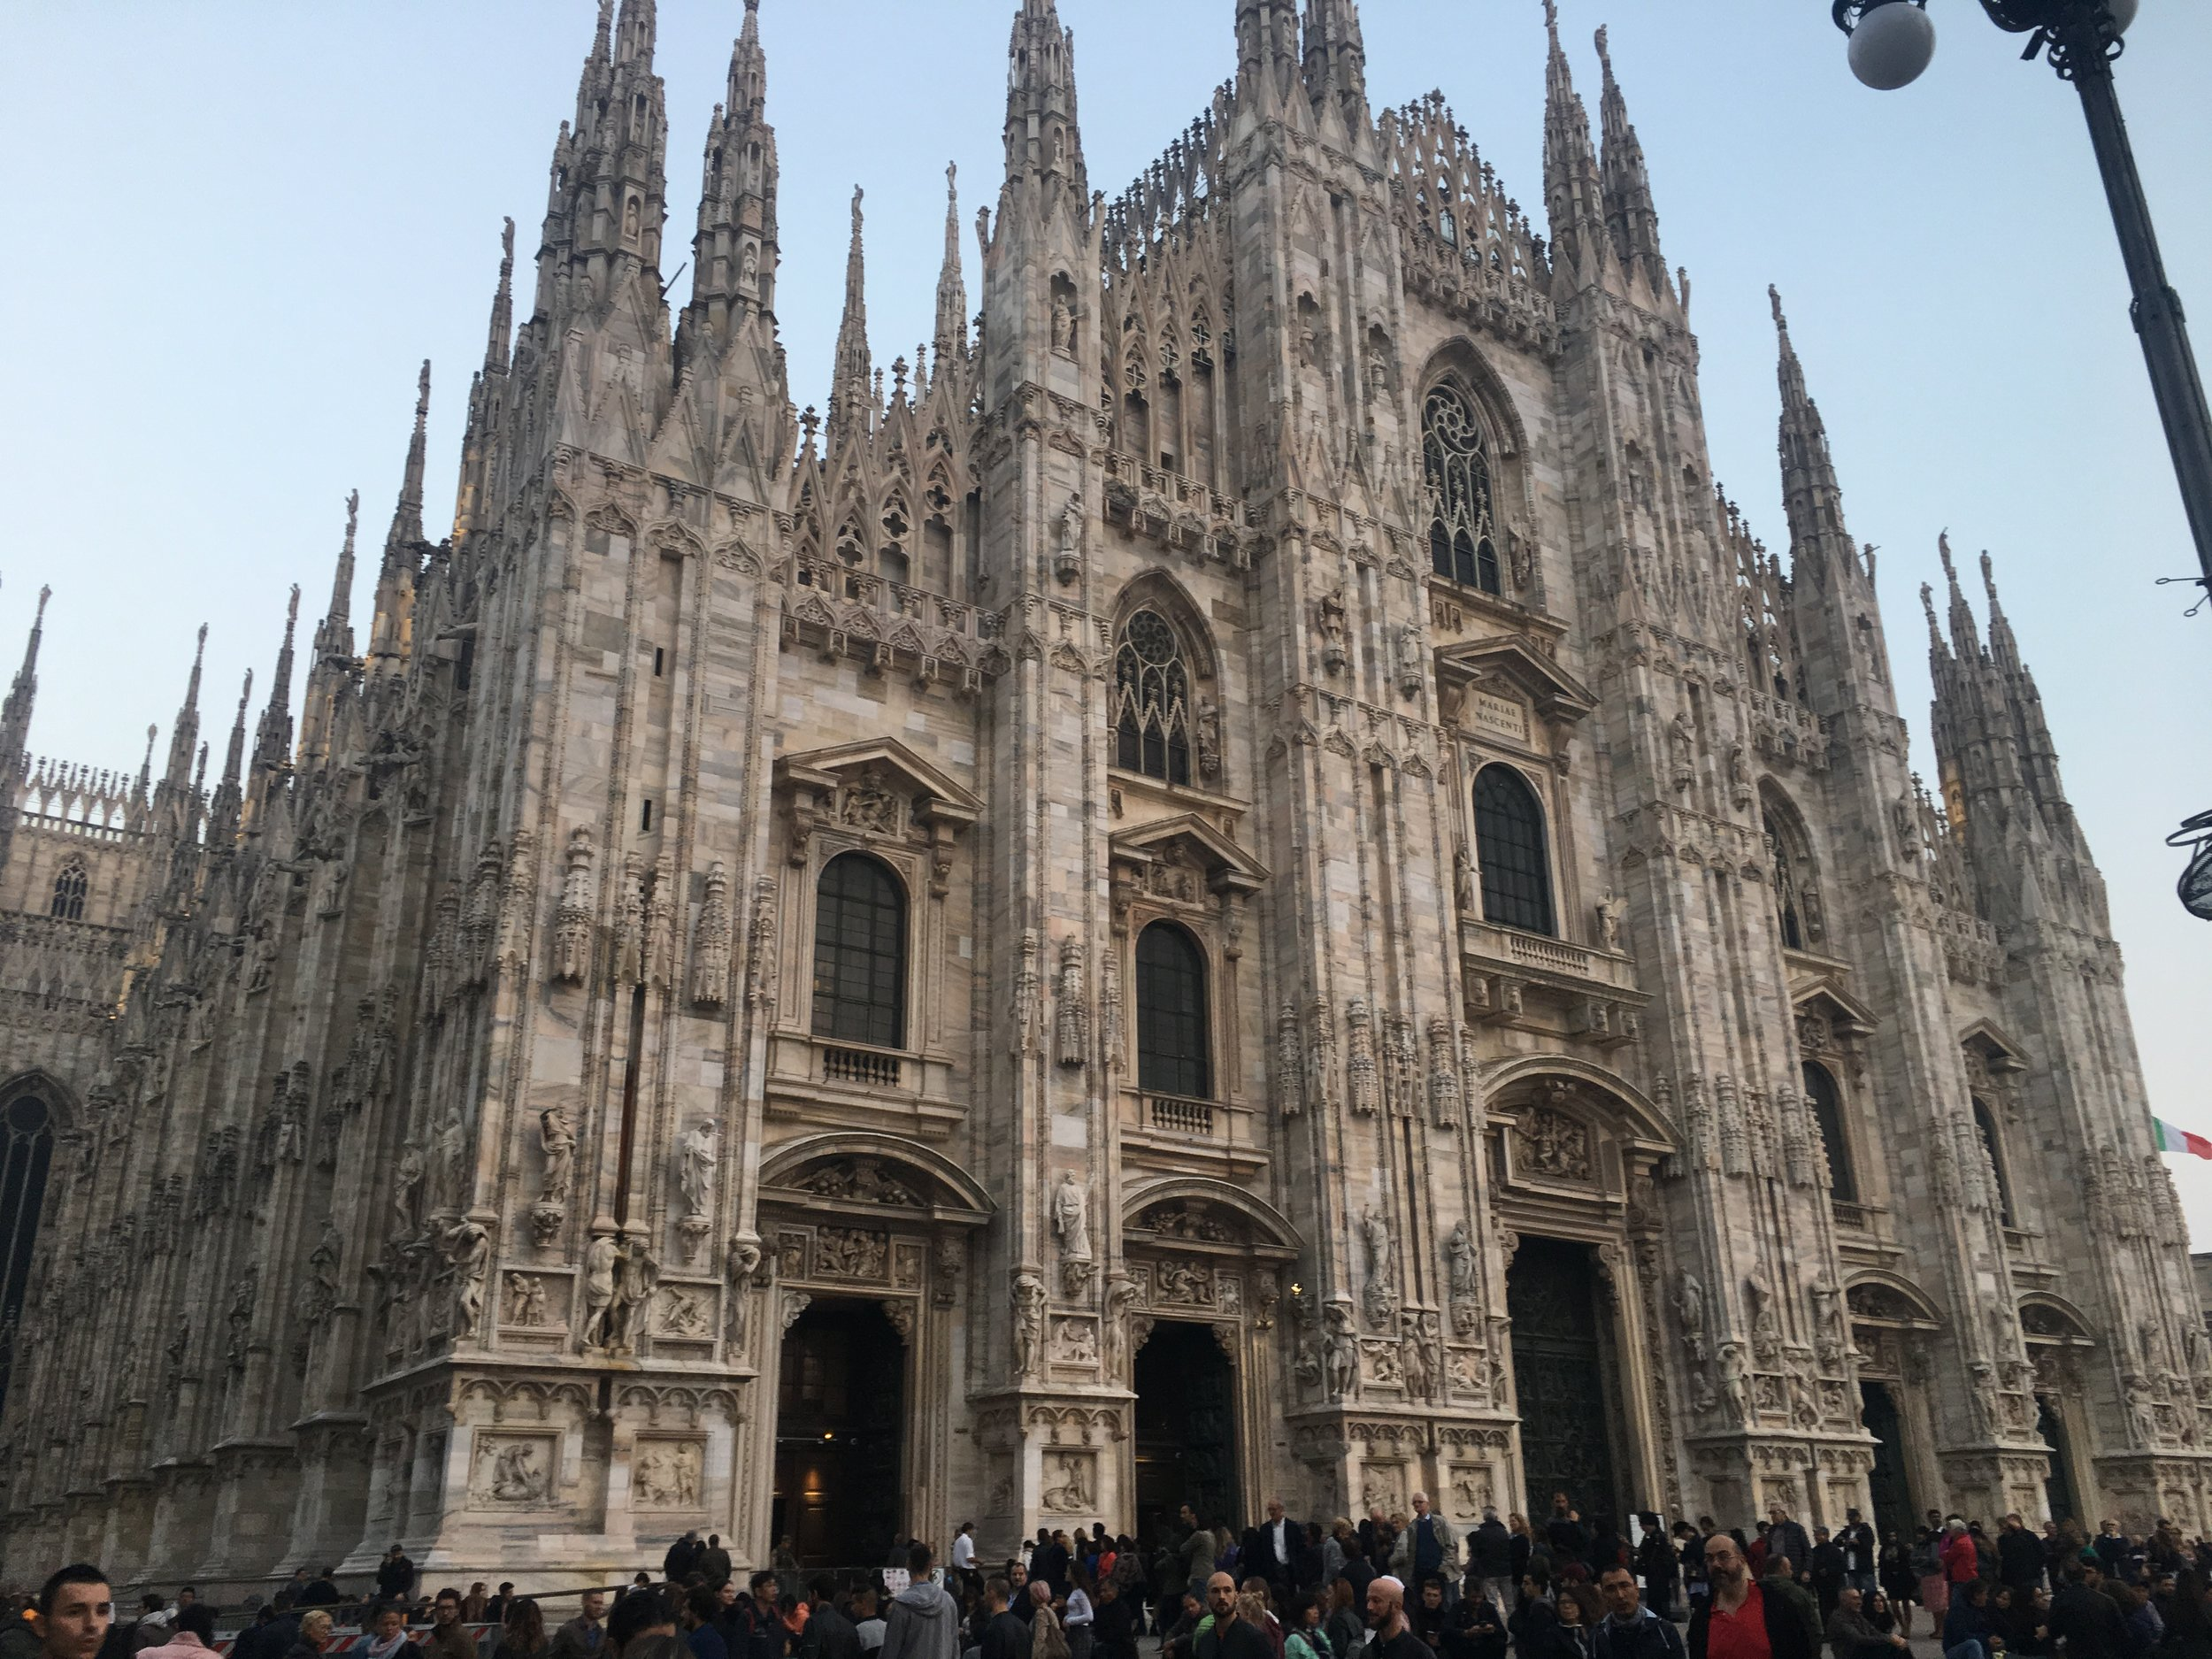 The Duomo in Milan is an incredibly impressive cathedral.